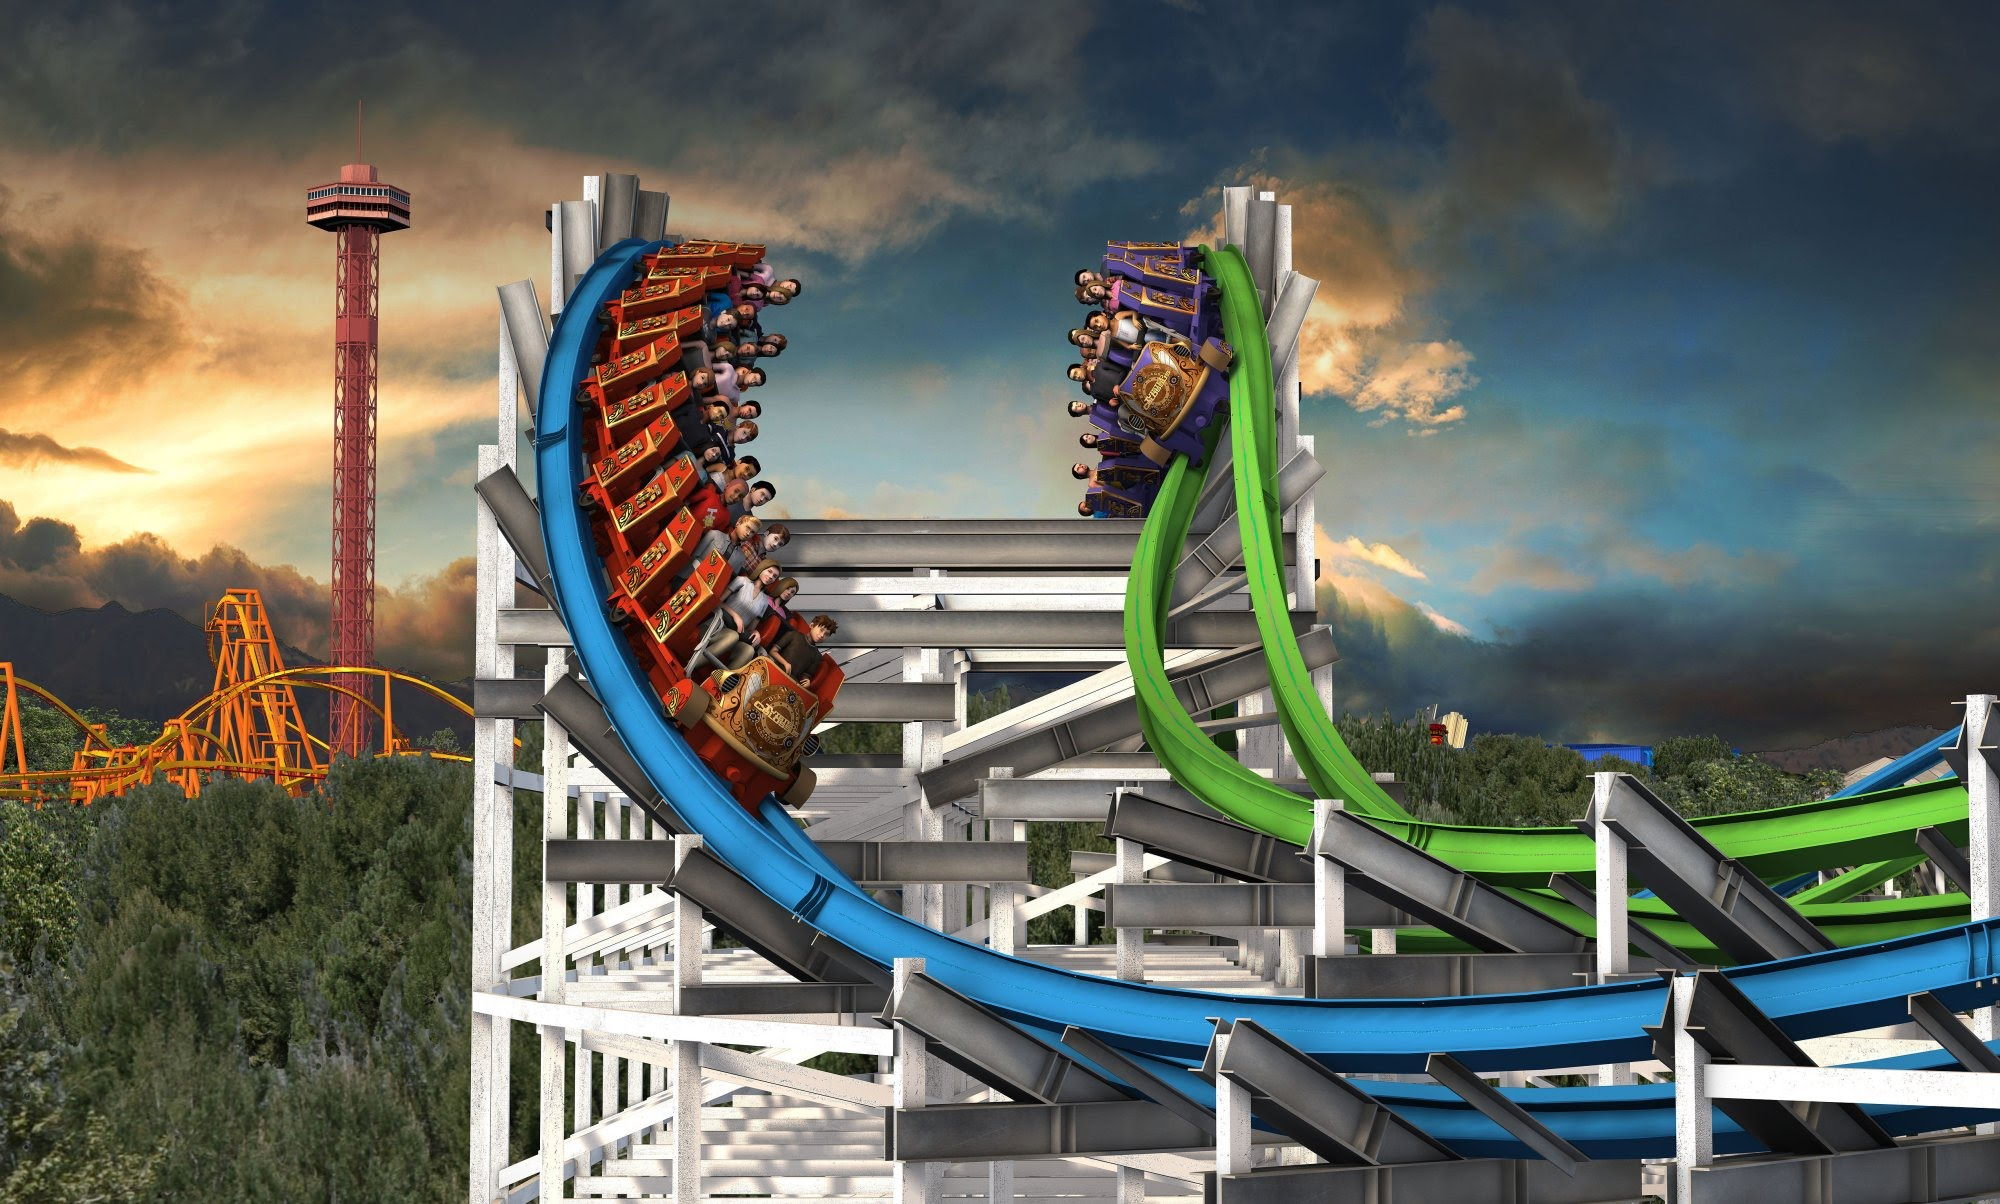 New Rides At The Six Flags Magic Mountain